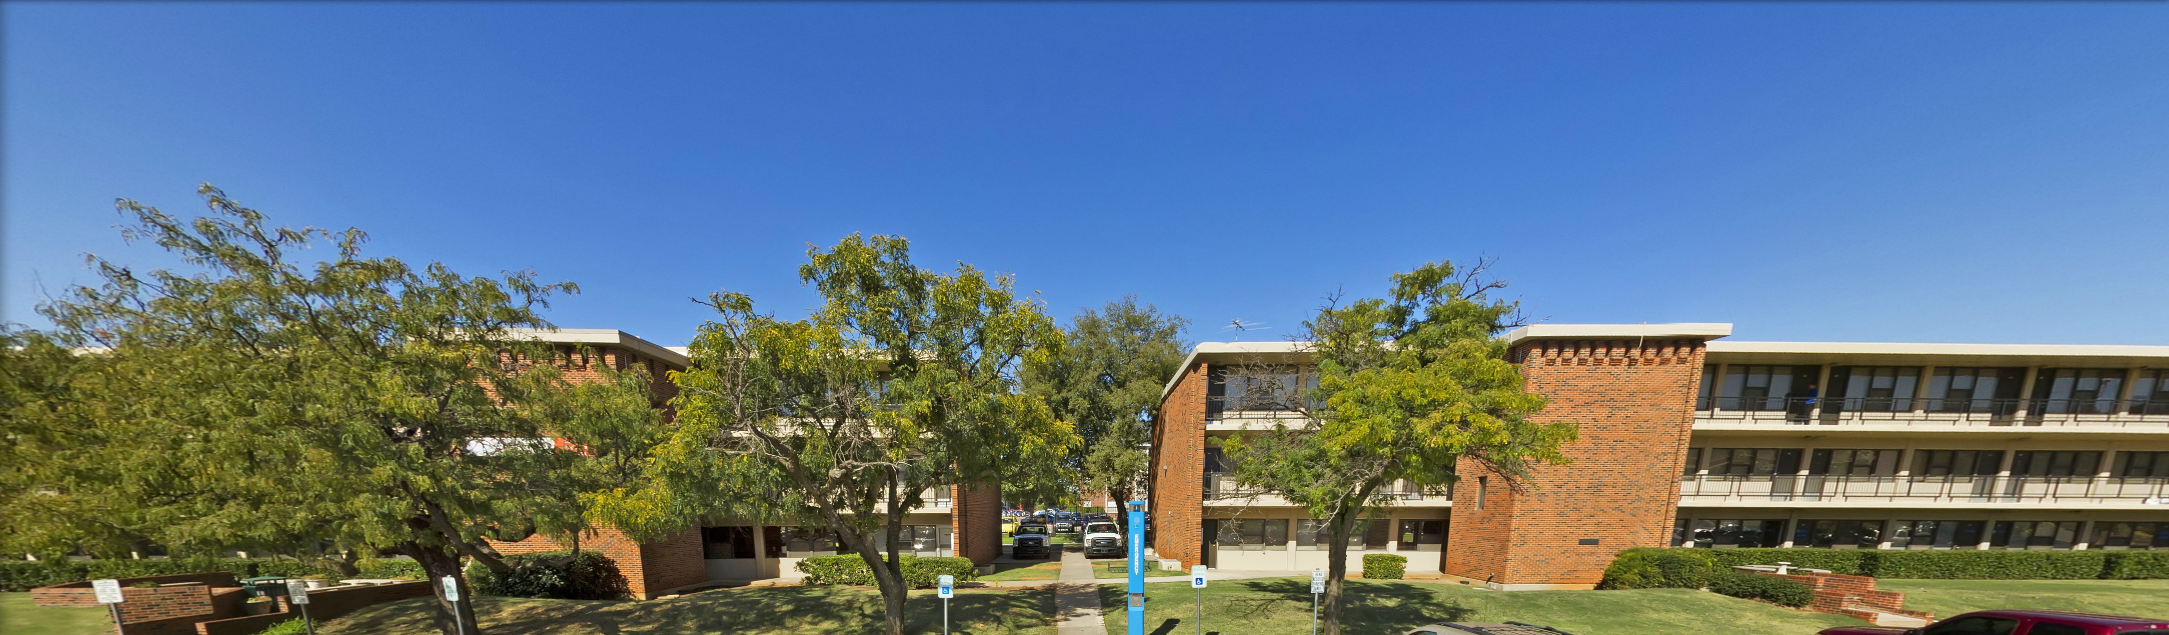 An exterior shot of the Harris and Draper residence halls at OKCU.